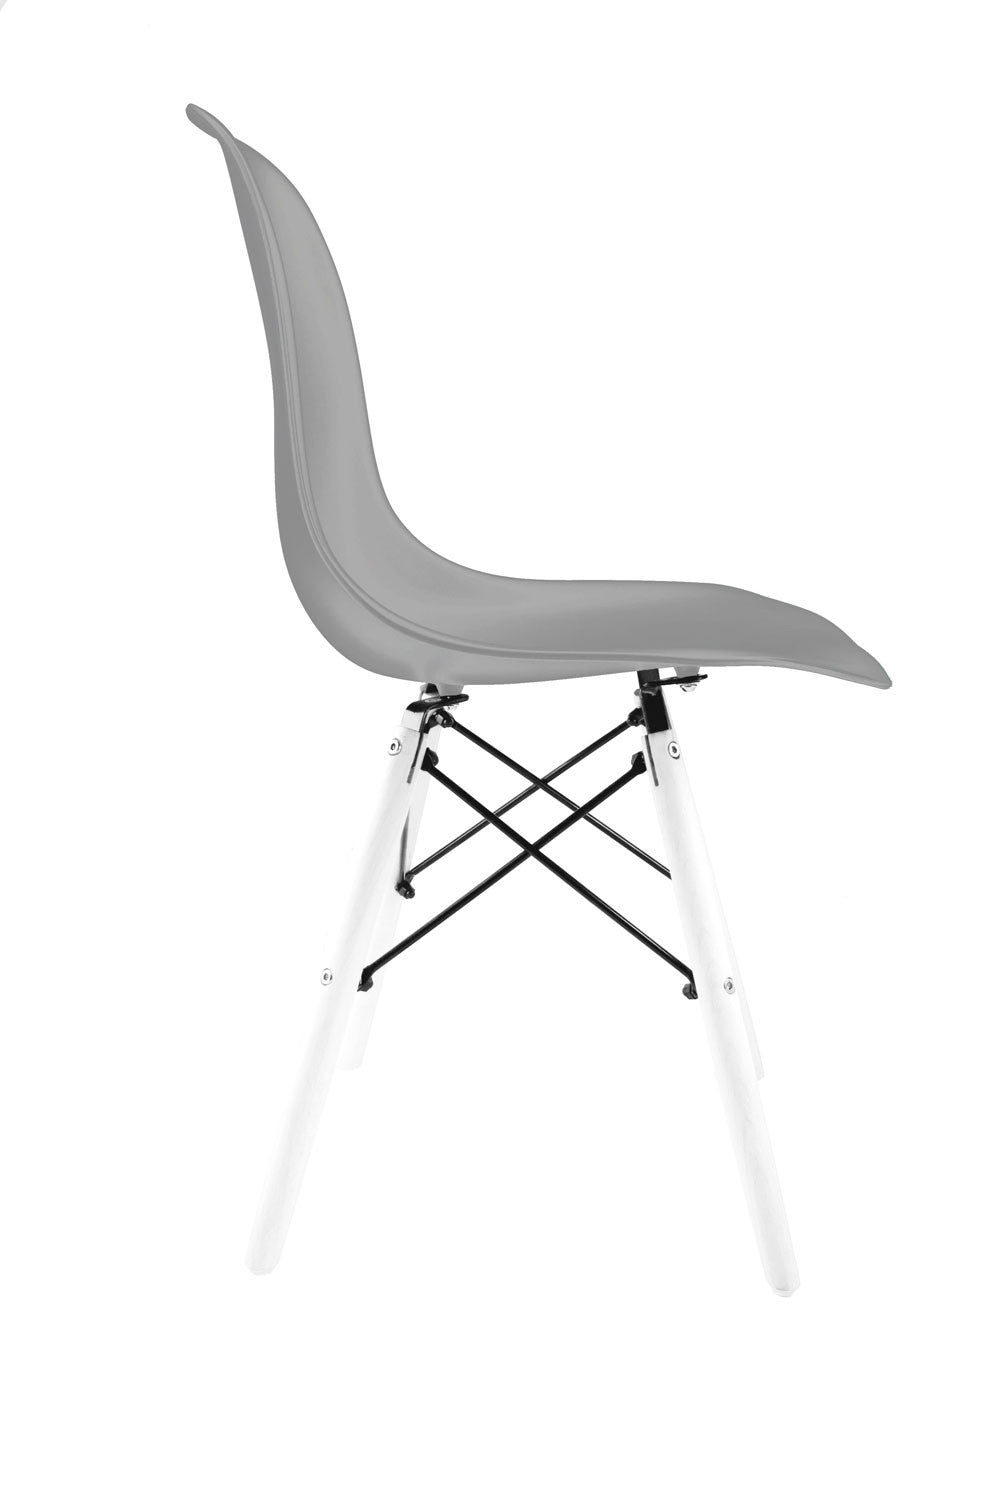 Silla Tower gris blanca